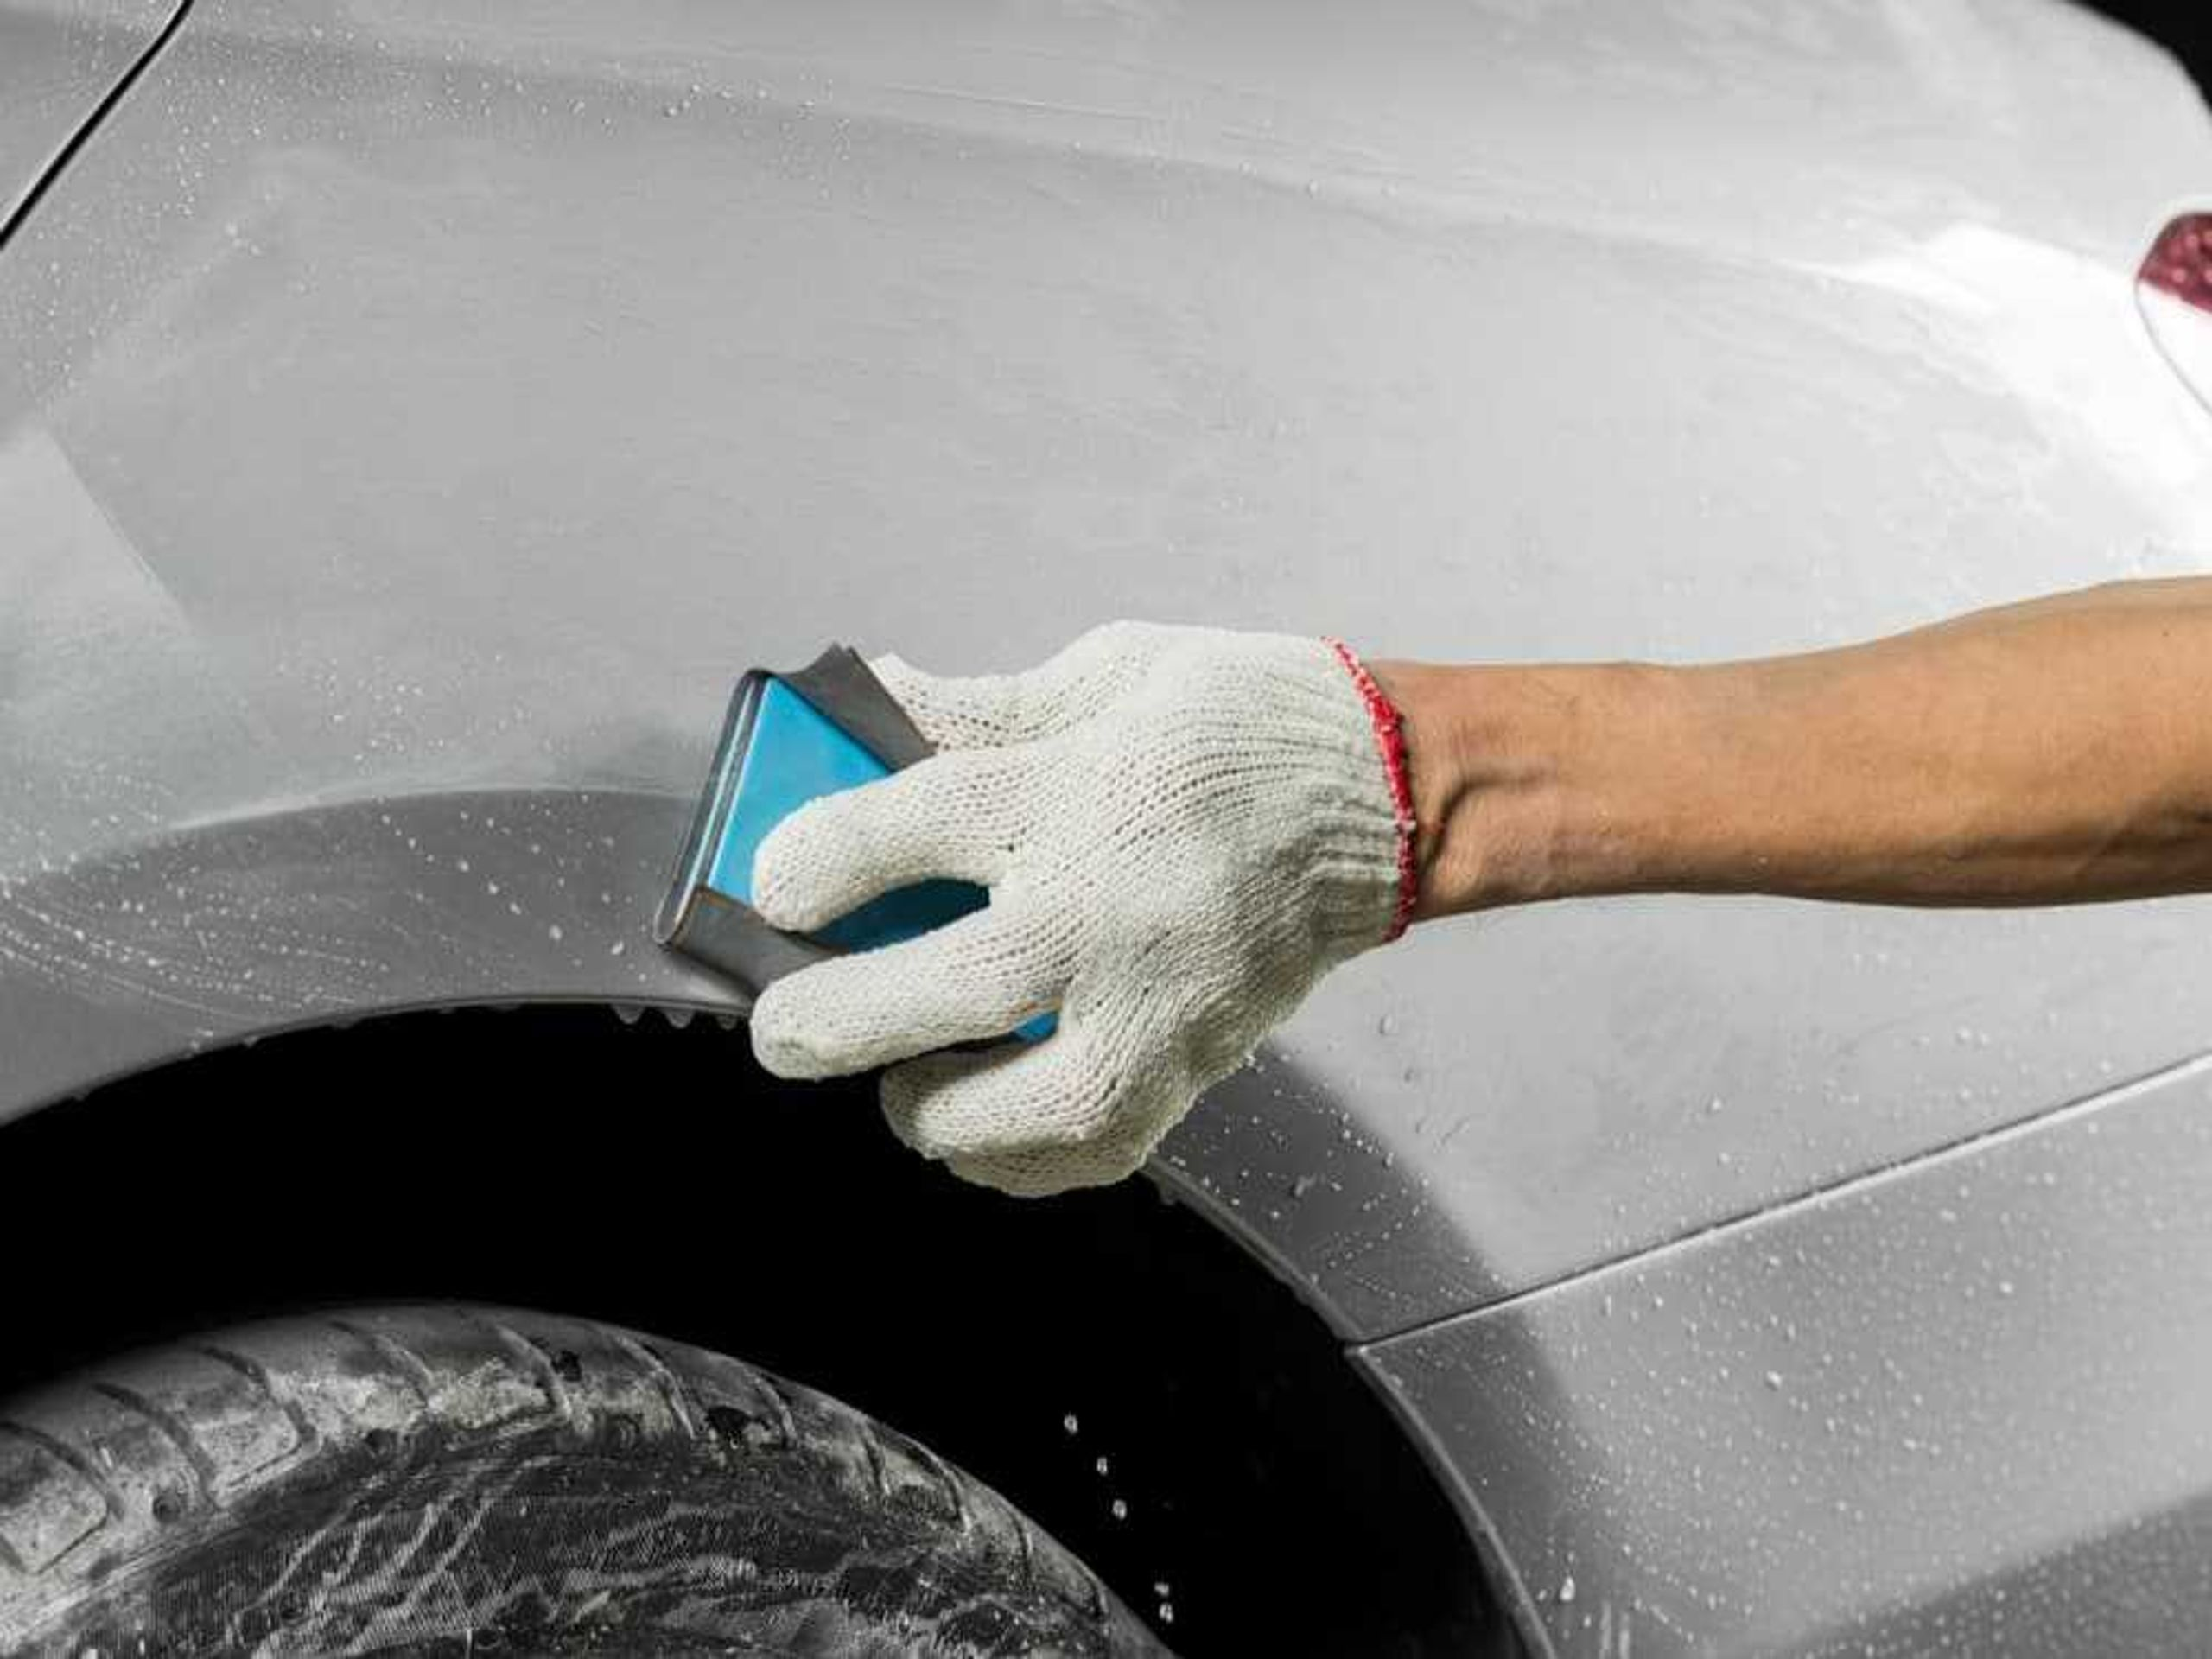 Overspray Remover For Cars